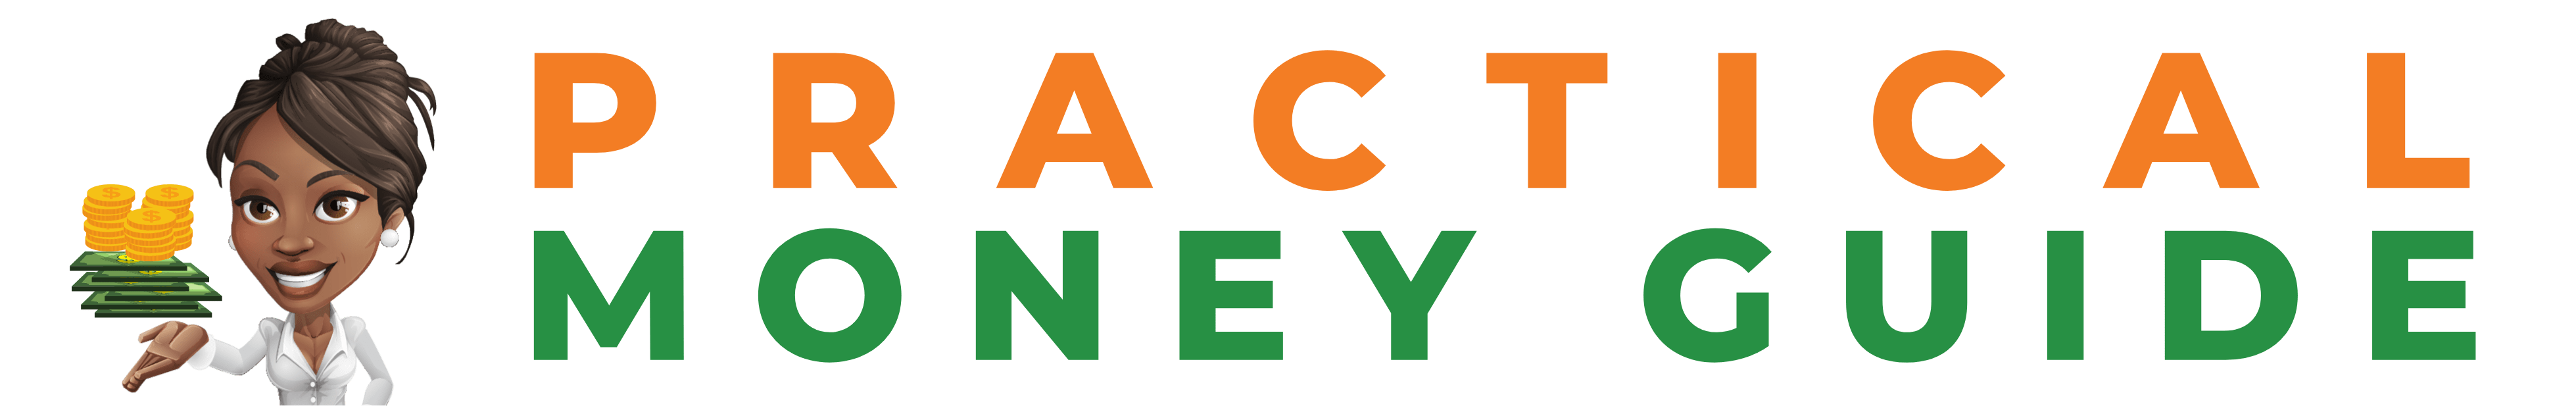 Practical Money Guide